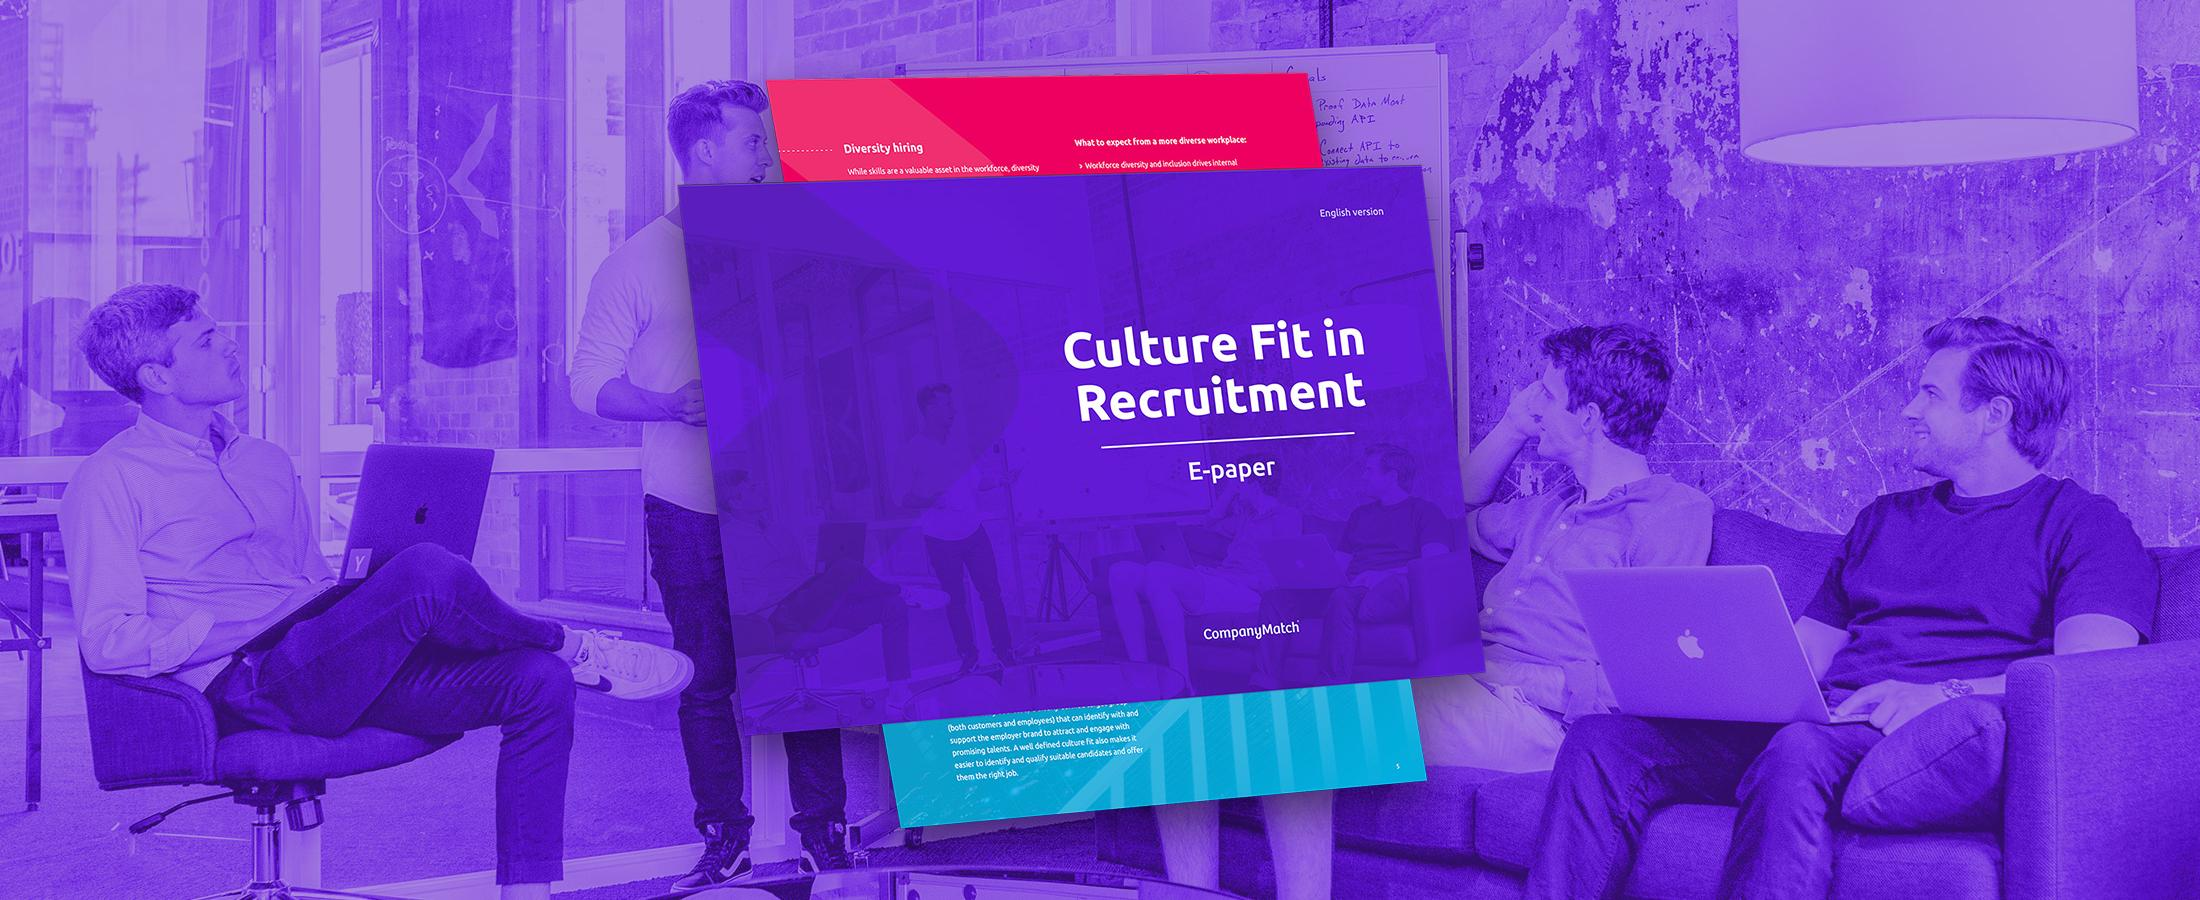 How to assess Culture Fit?